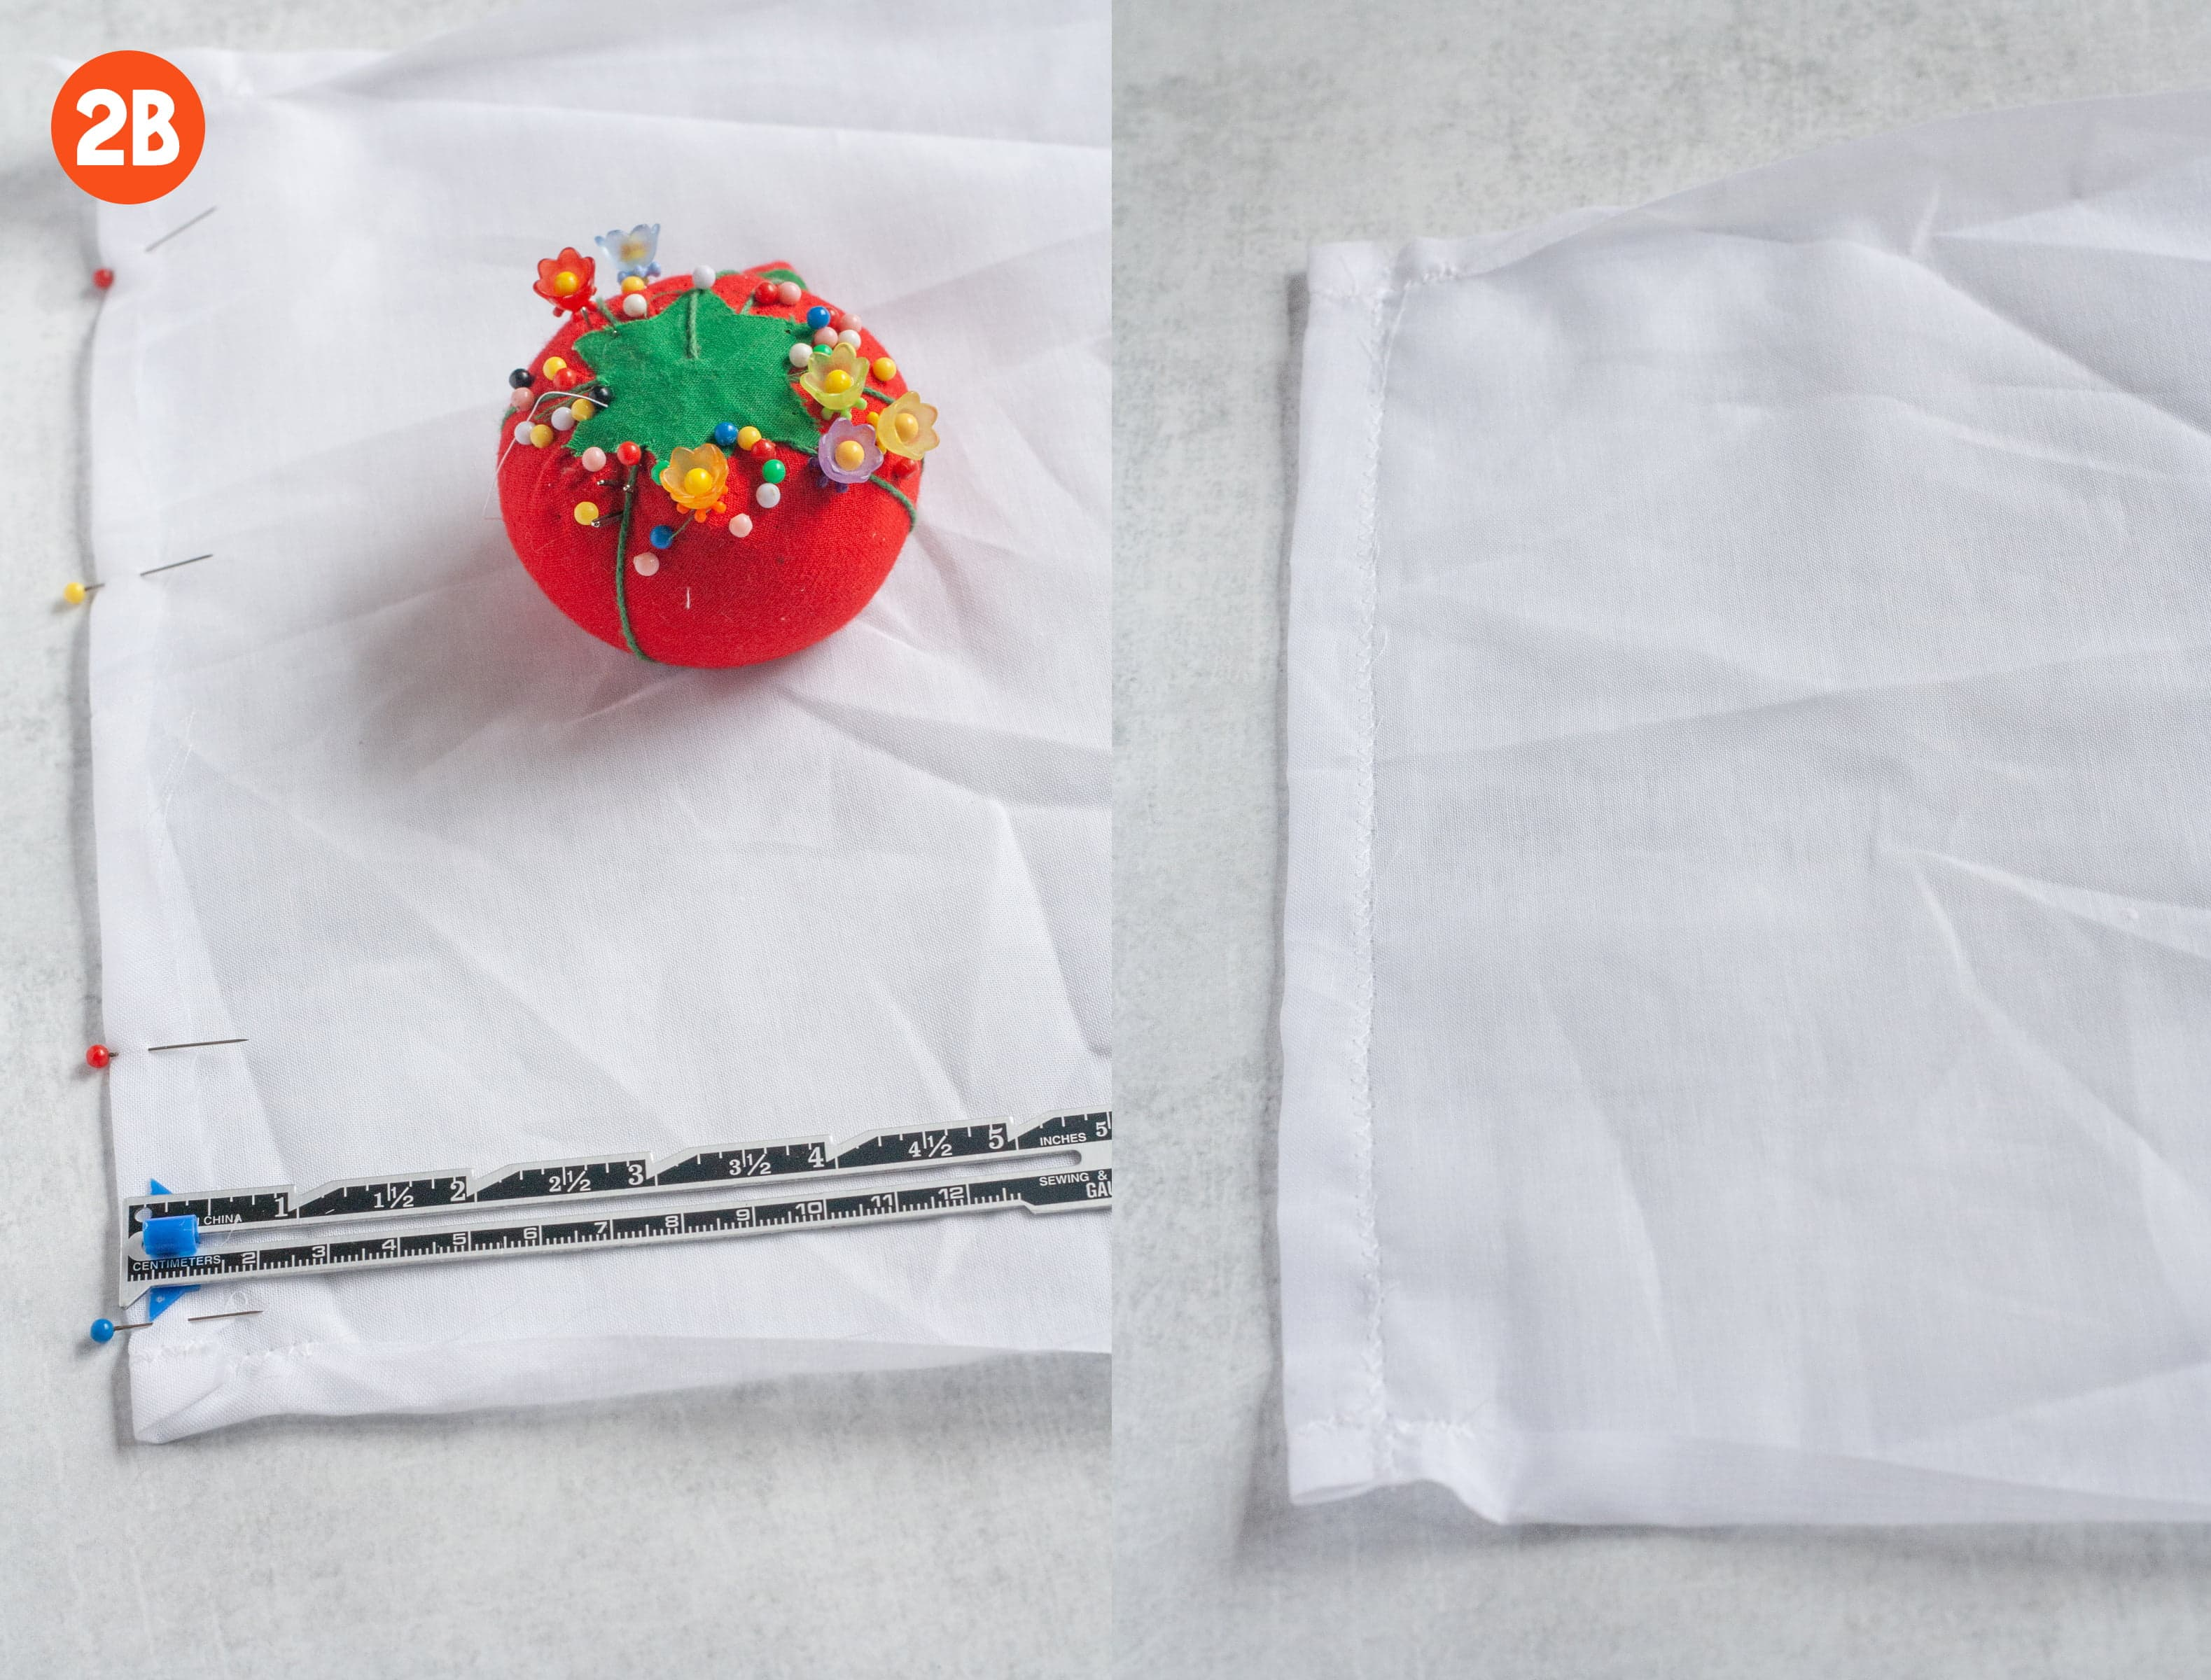 2 side-by-side shots showing how to make a drawstring casing. In one image, an edge of cotton voile is folded over and pinned. In the other, that fold is sewn down. Labeled 2b.